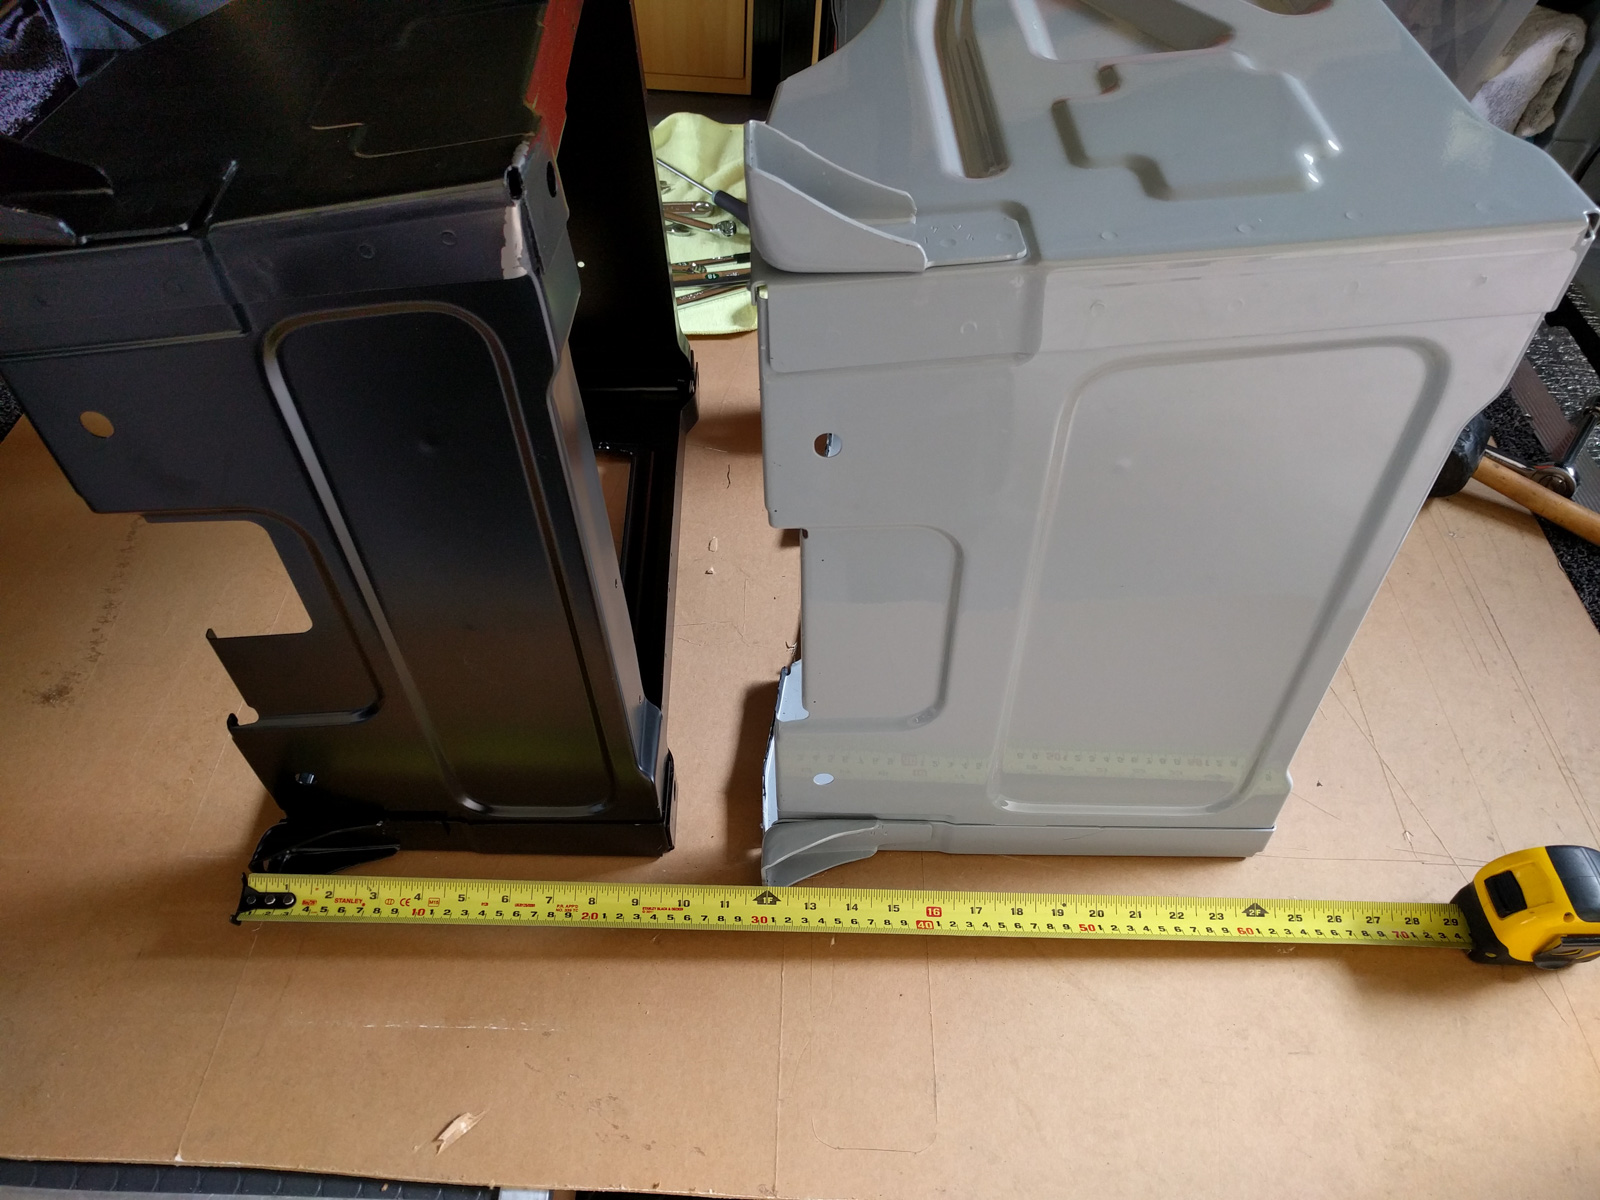 Replacing the seat bases with lower models for the swivels and air ride suspension seats